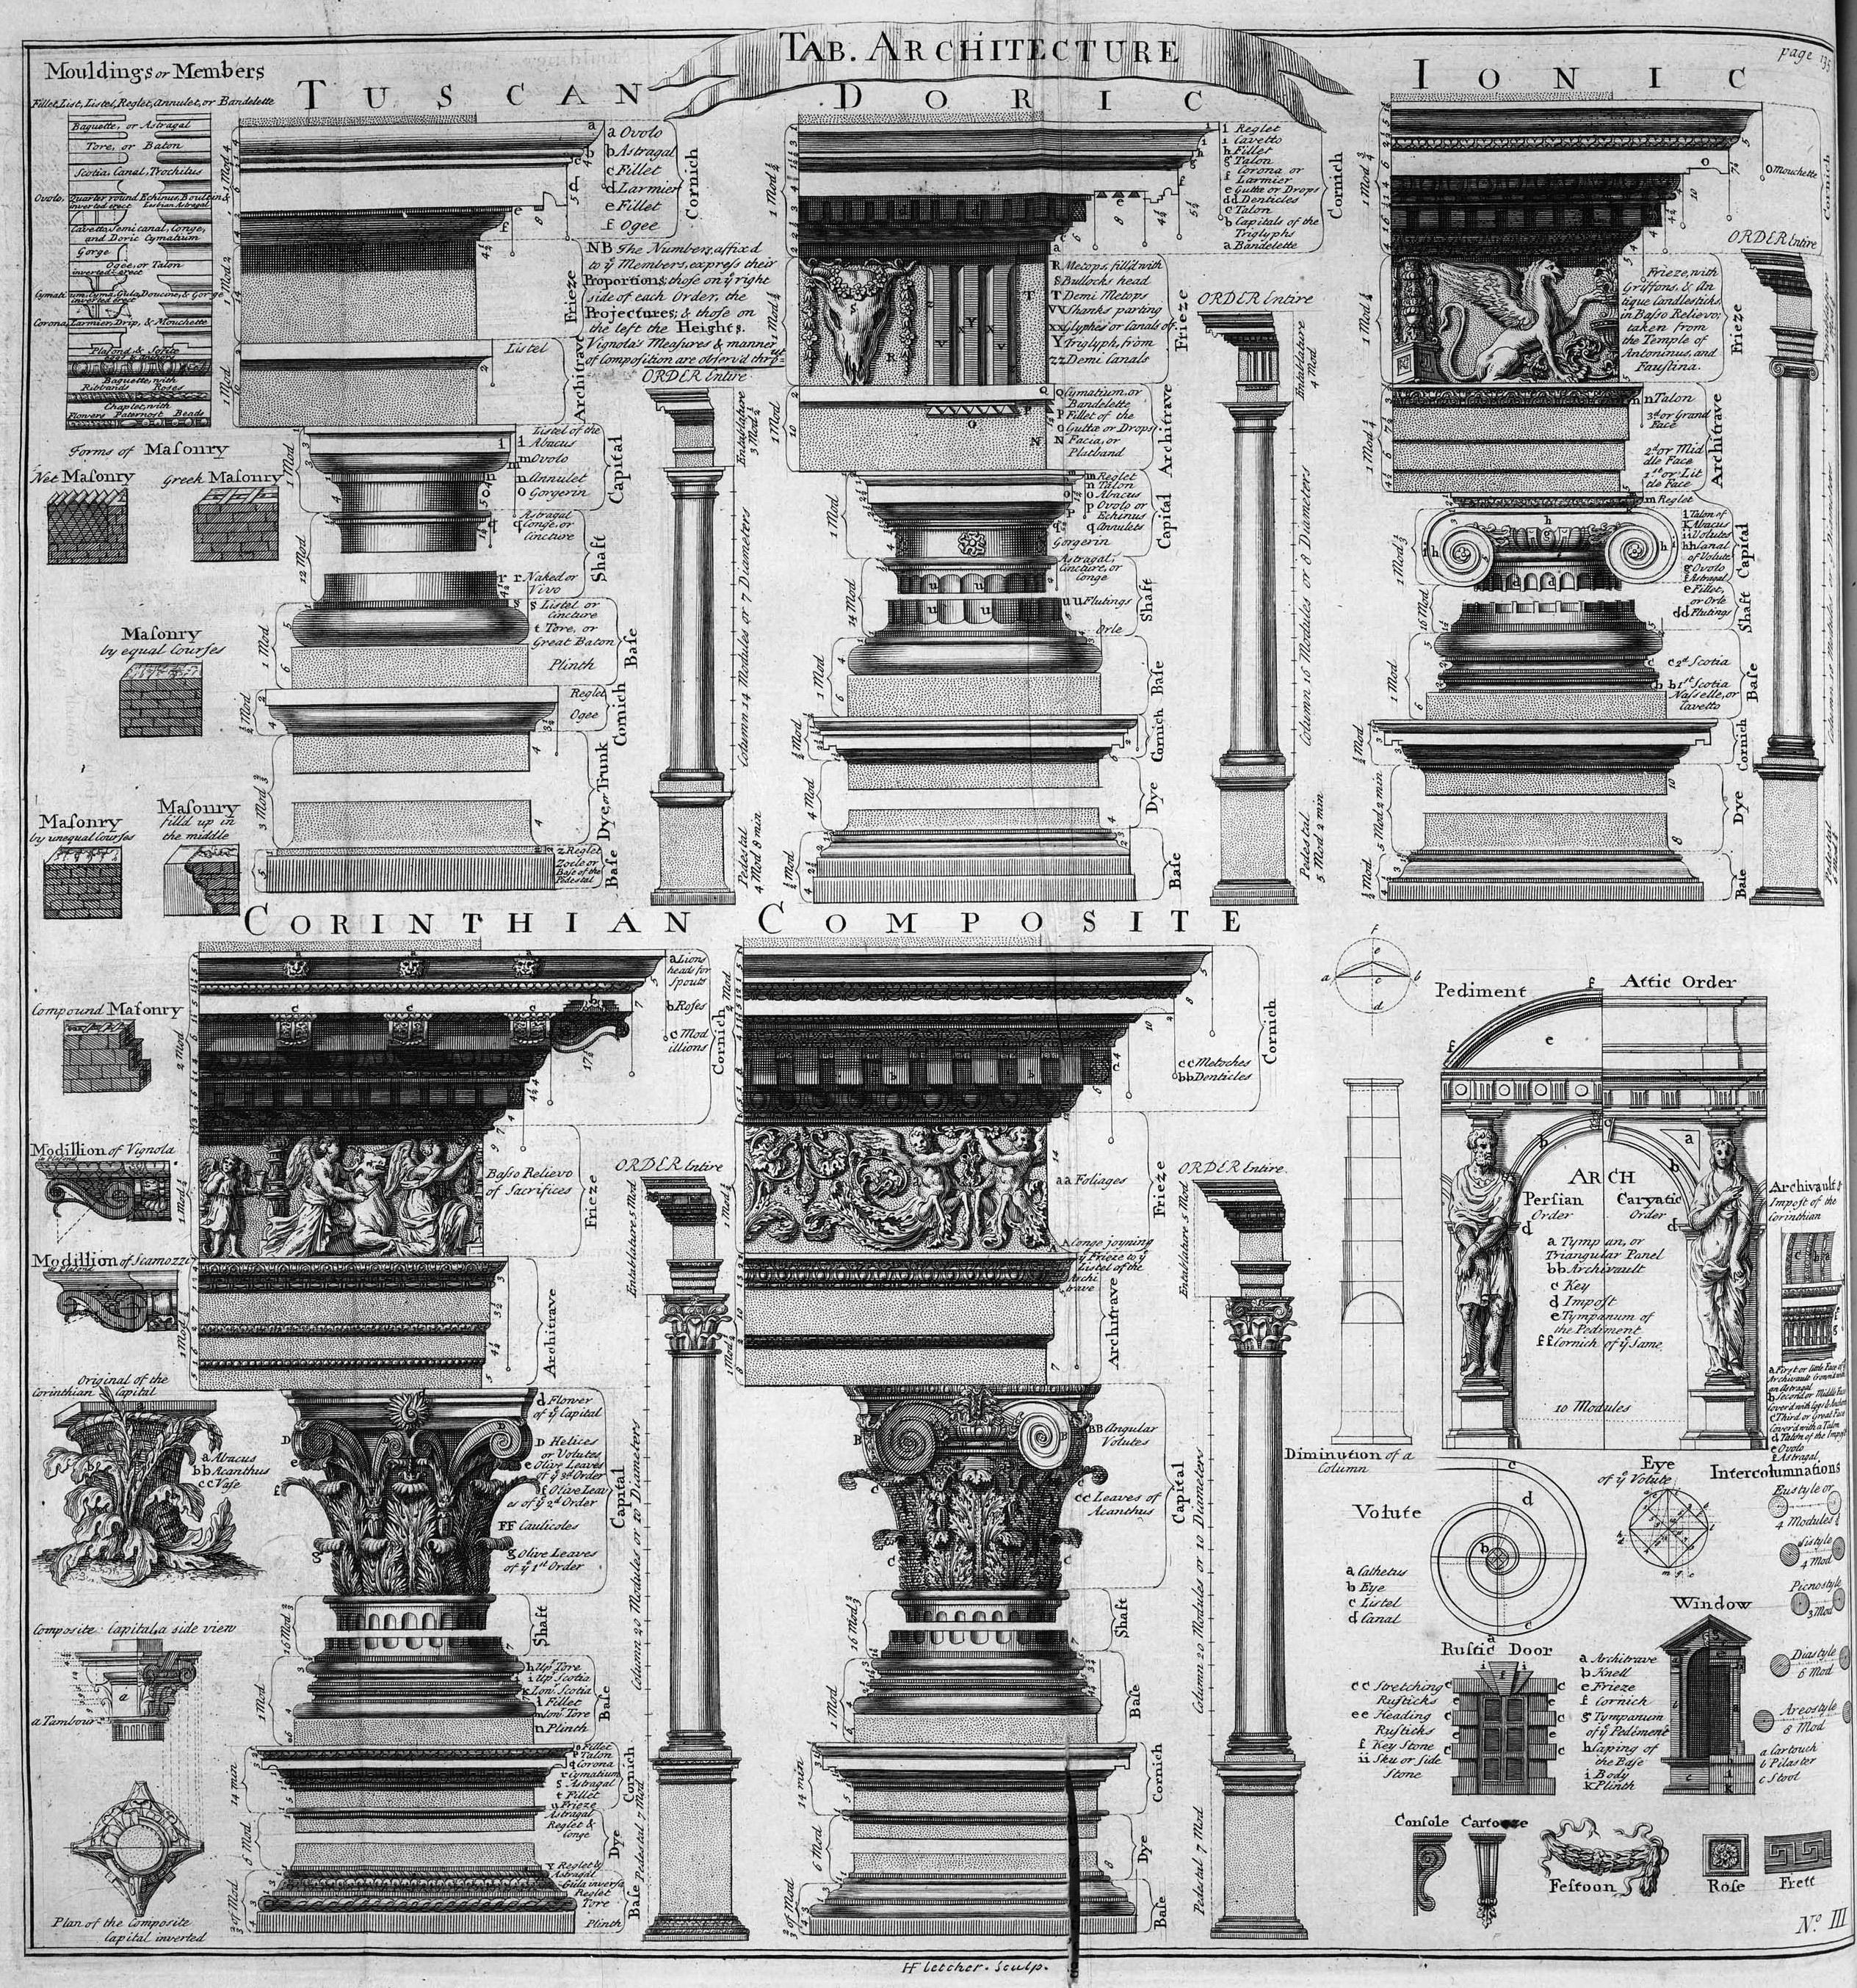 Architectural Column Base : Architectural column visual glossary